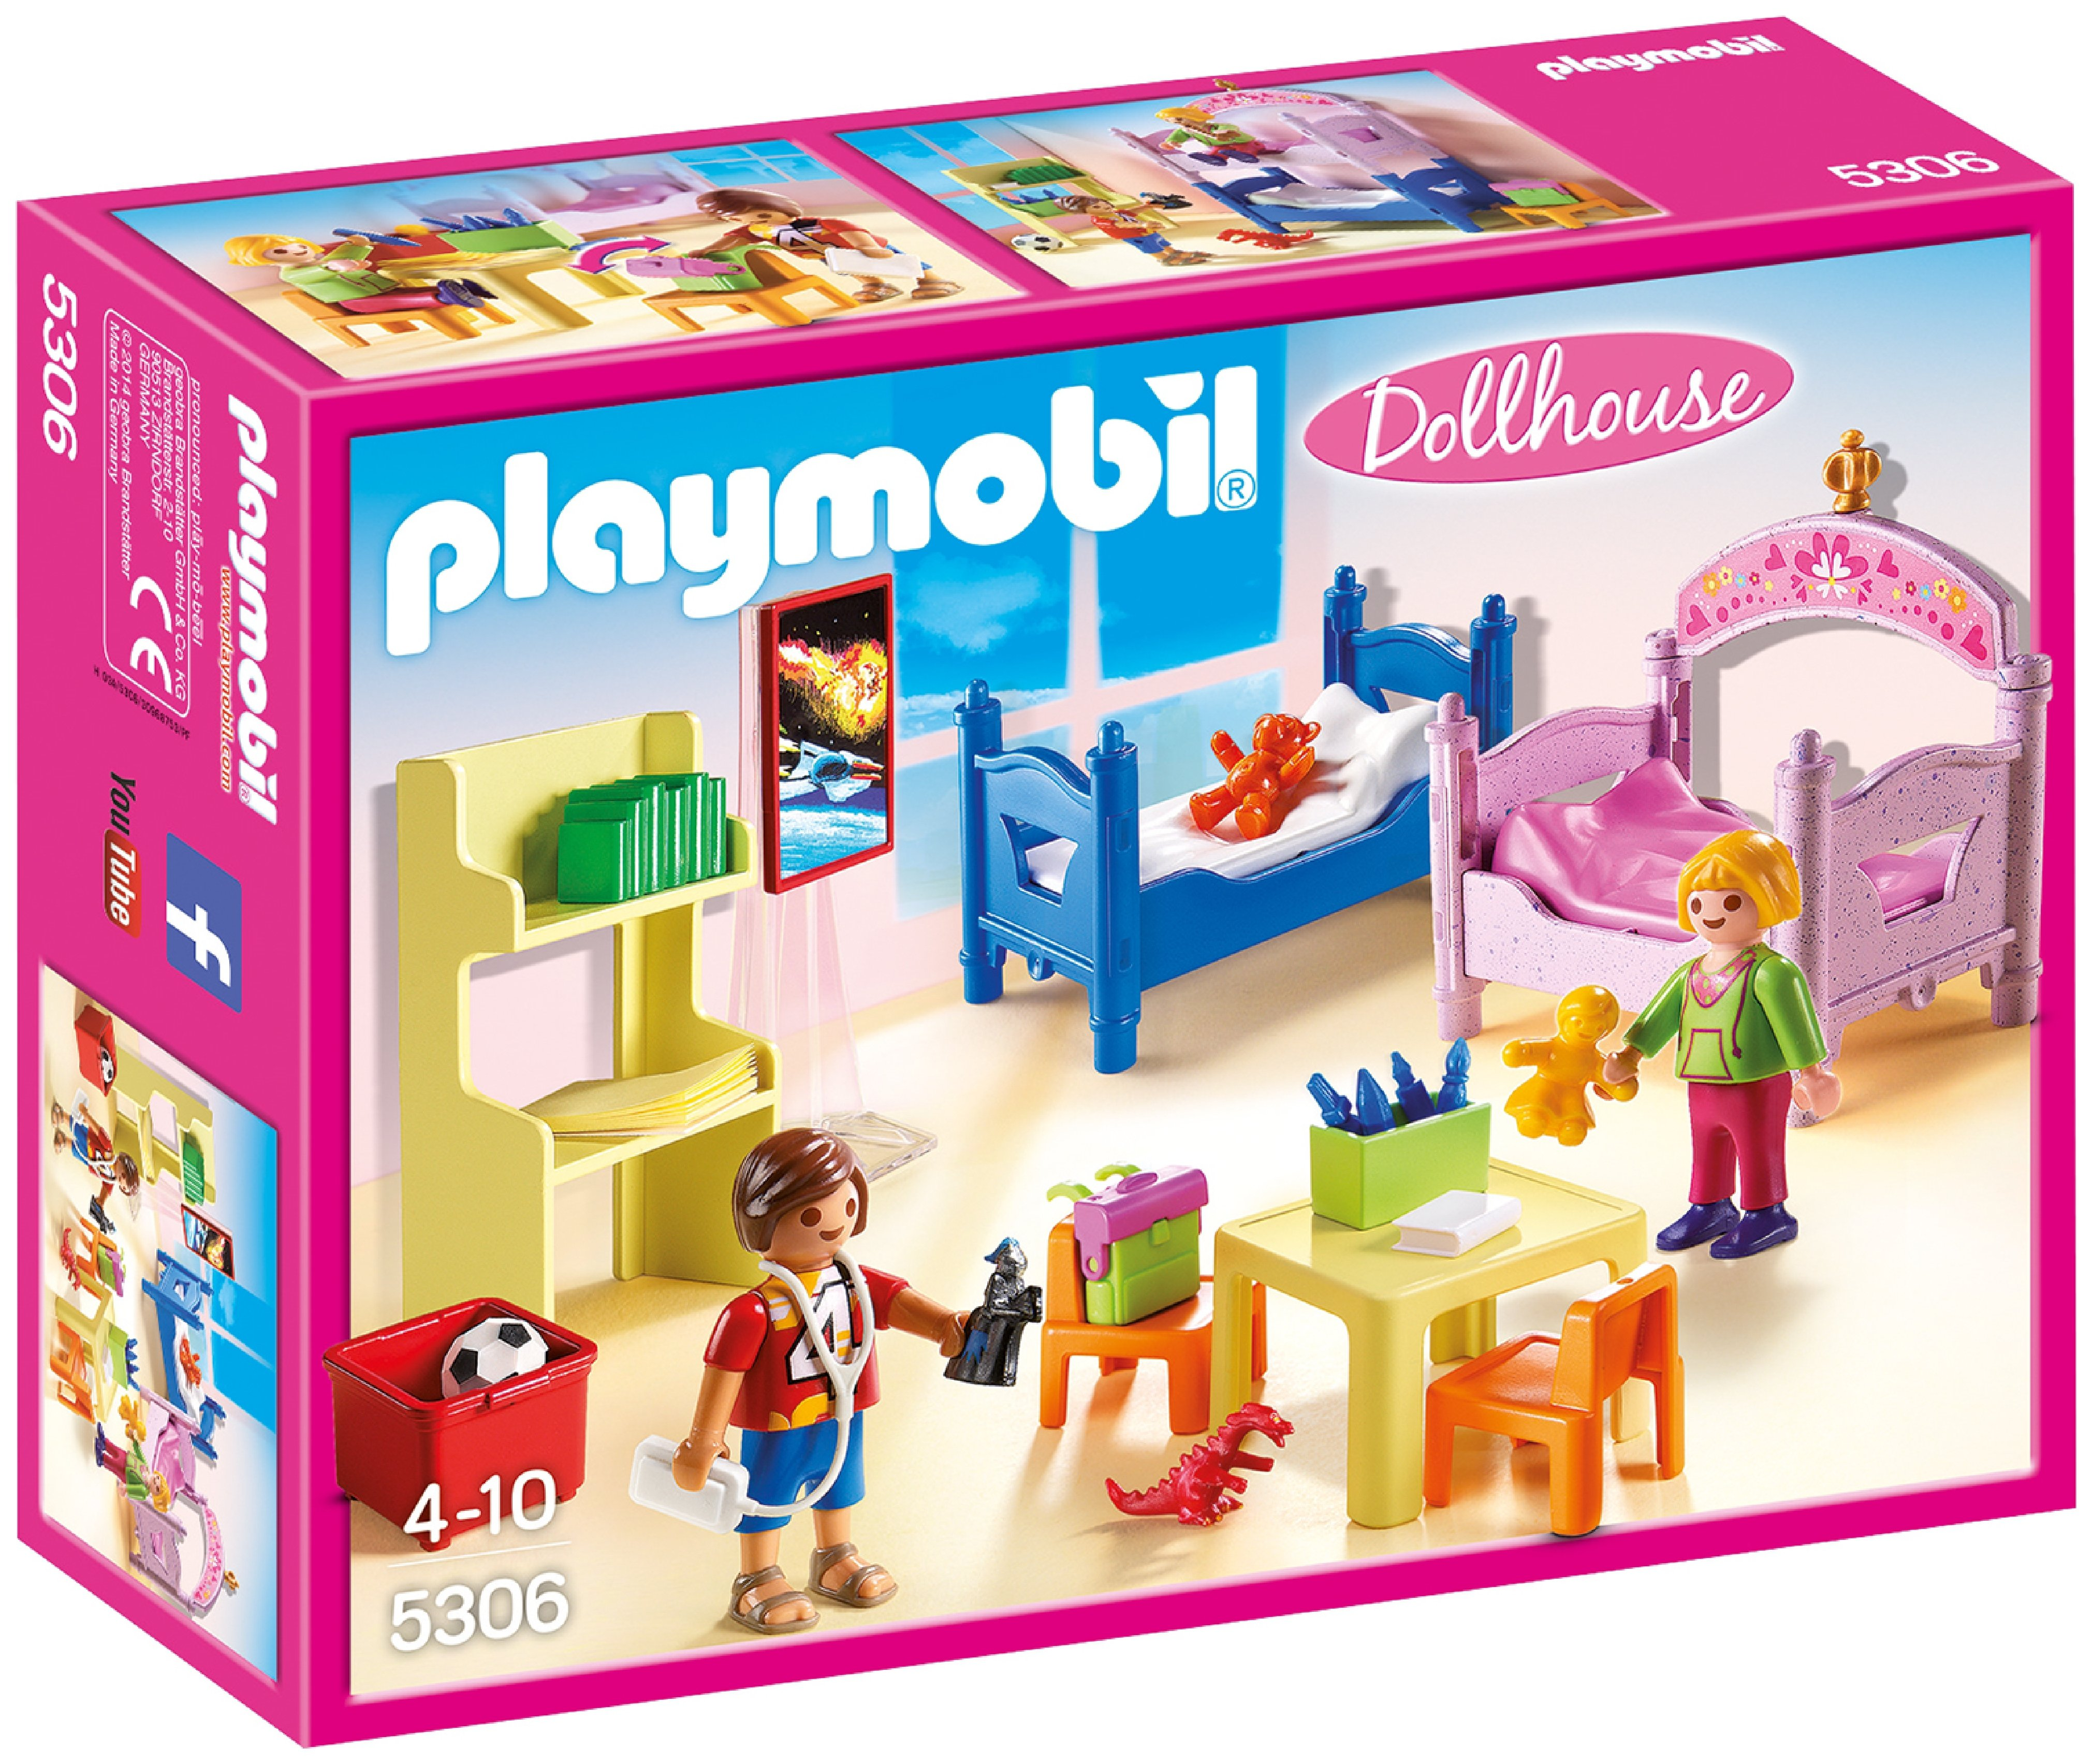 Playmobil 5306 Dollhouse Childrens Room.